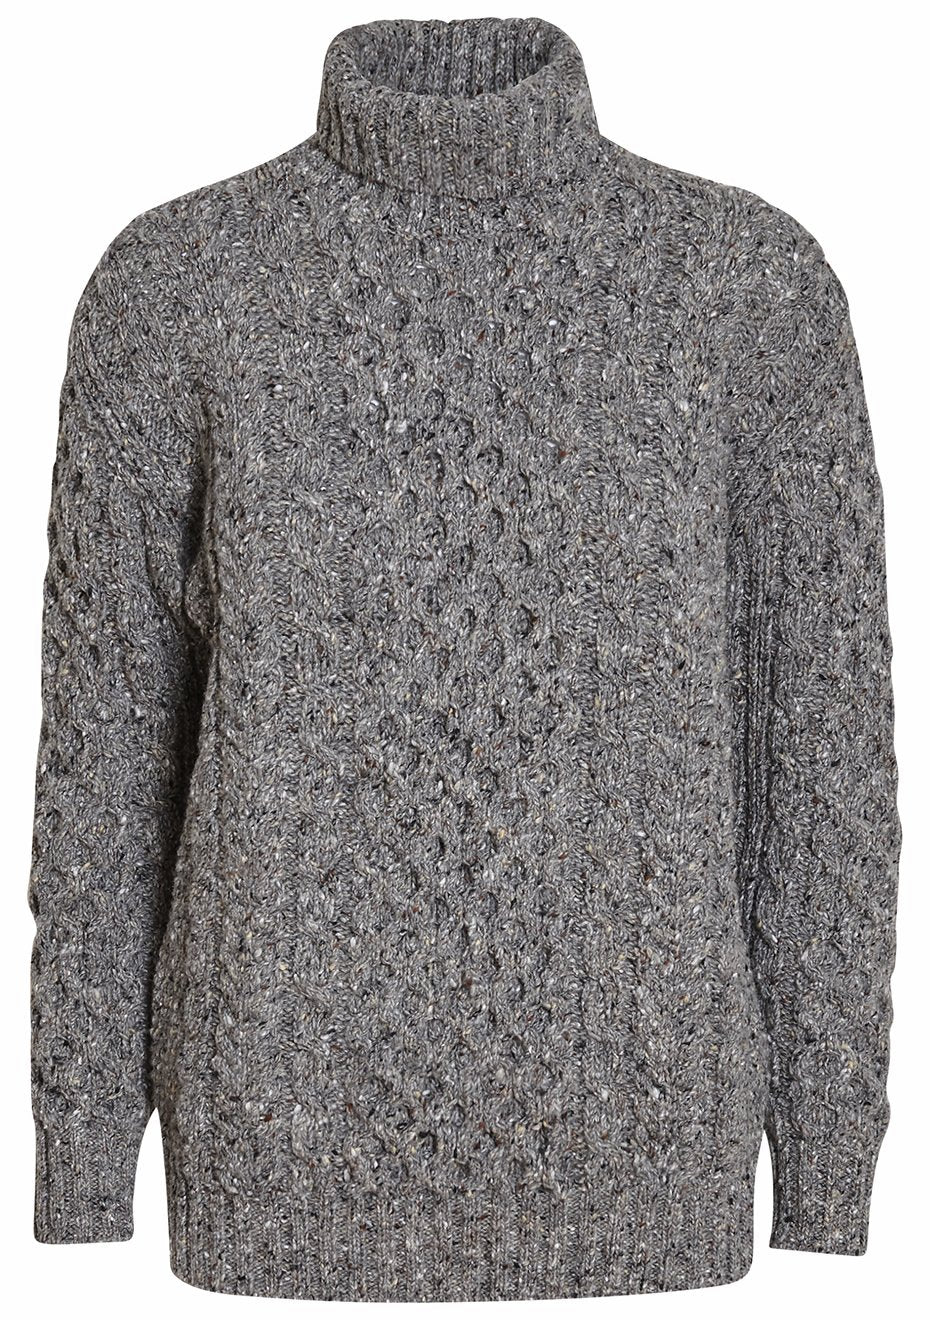 Donegal Aran Roll Neck